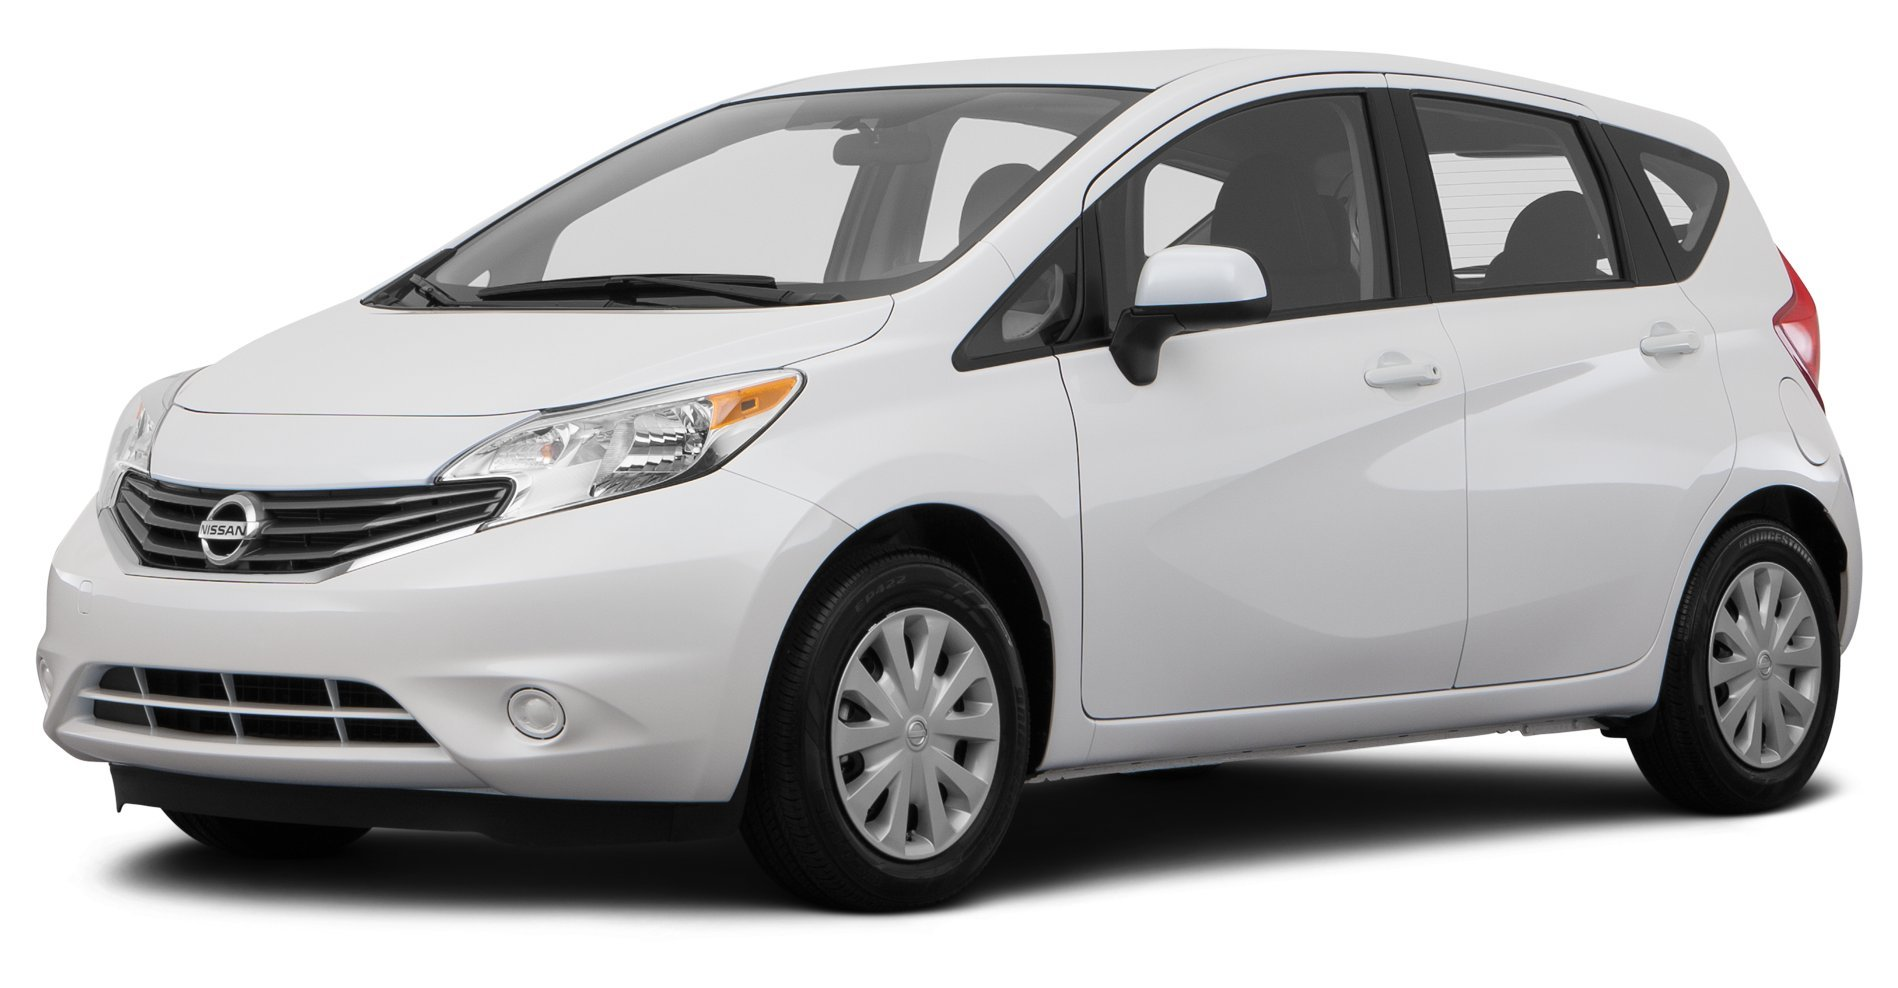 ... 2014 Nissan Versa Note SV, 5-Door Hatchback CVT 1.6